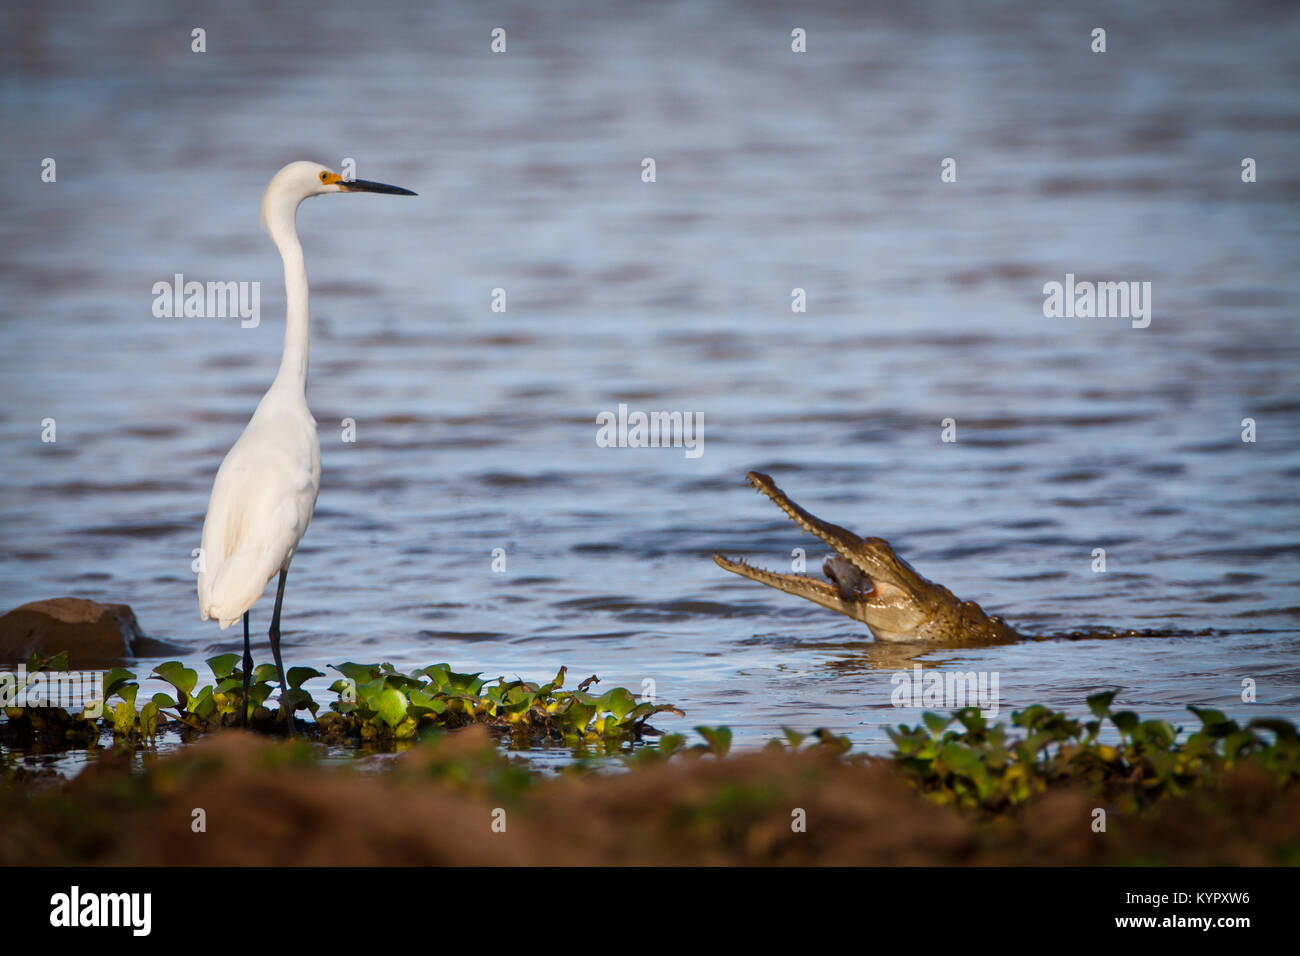 Great egret and Spectacled Cayman eating fish in the Cienaga de las Macanas, Herrera province, Republic of Panama. Stock Photo